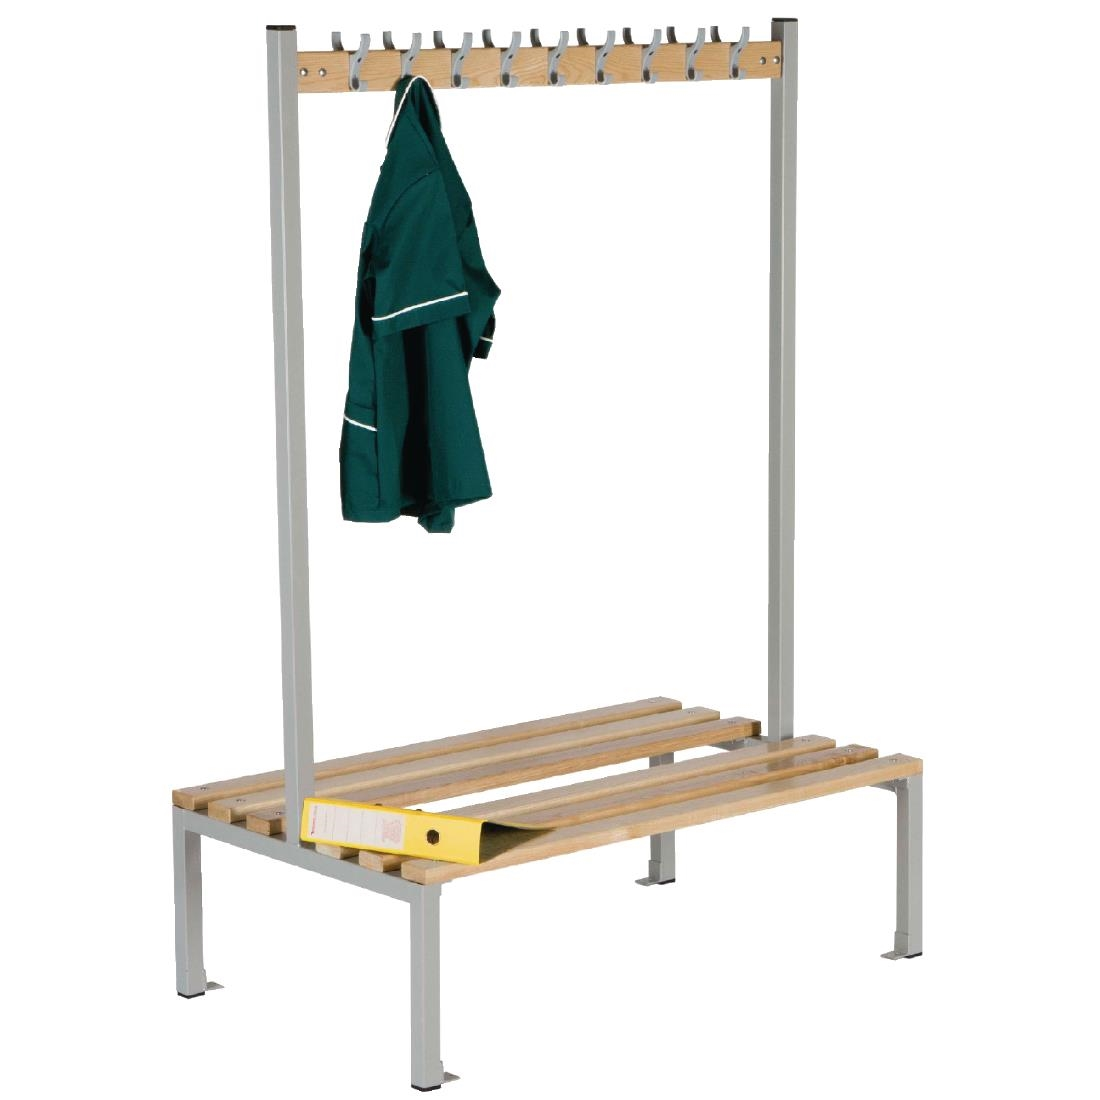 Image of Double Sided Coat Hanger Bench 1200mm